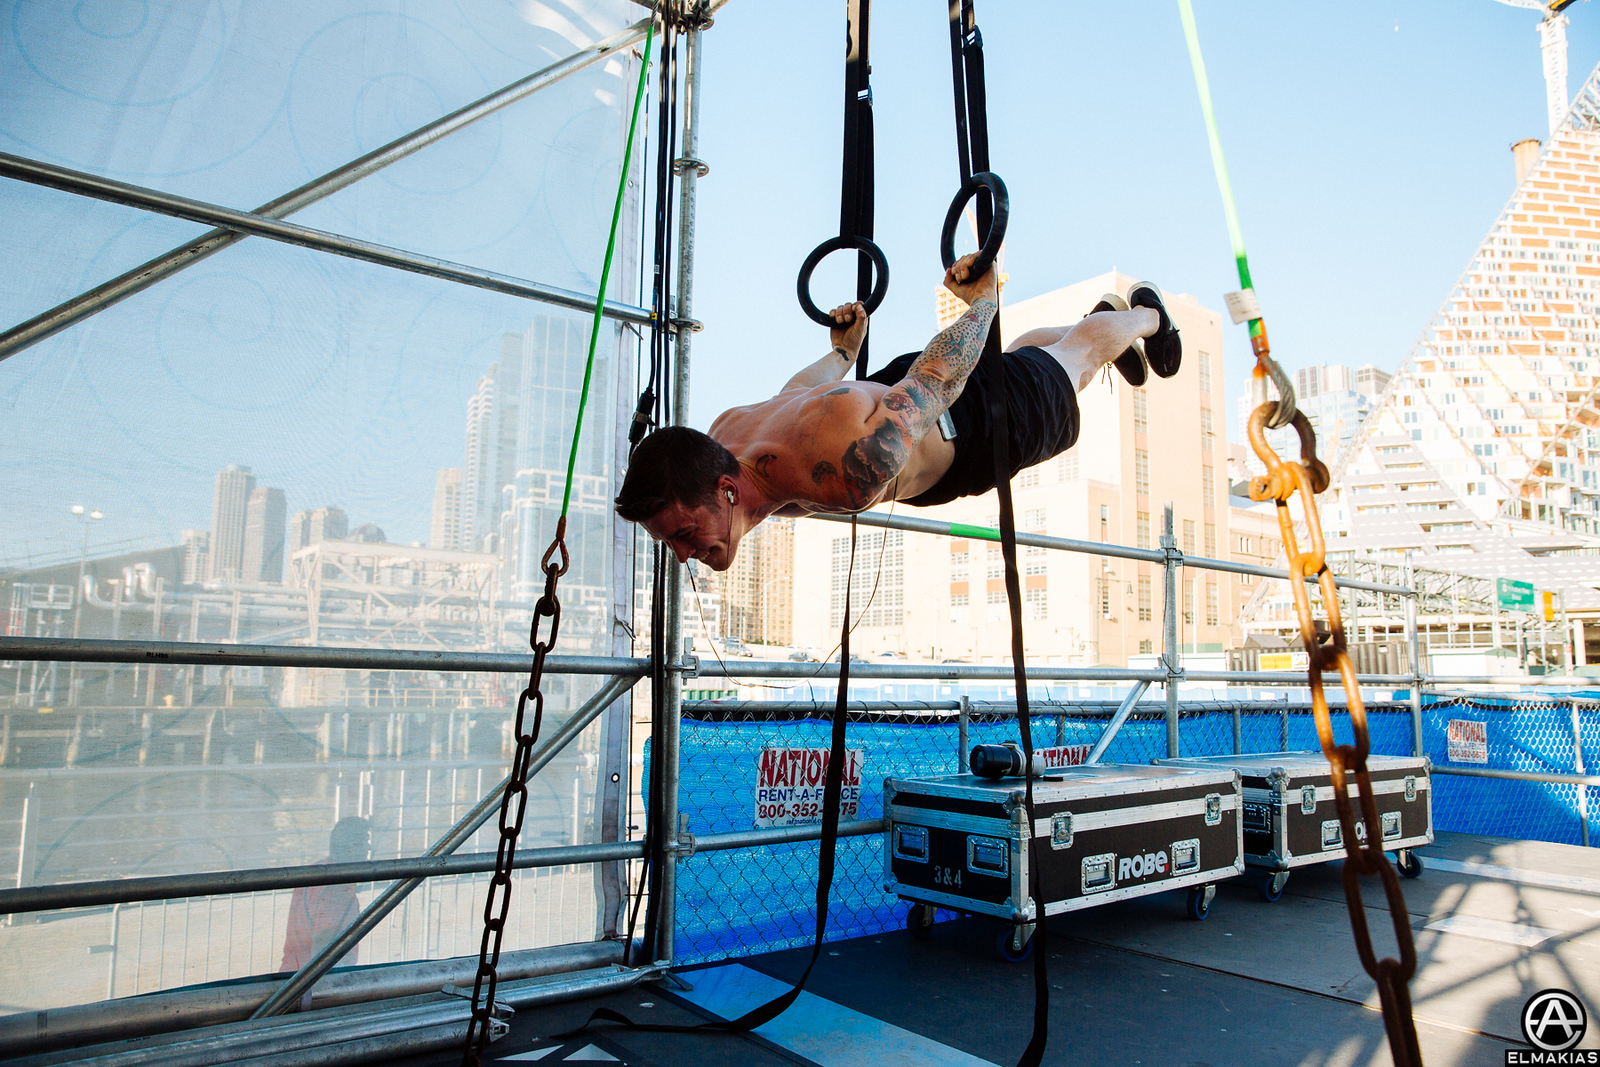 Zack of All Time Low working out on sidestage